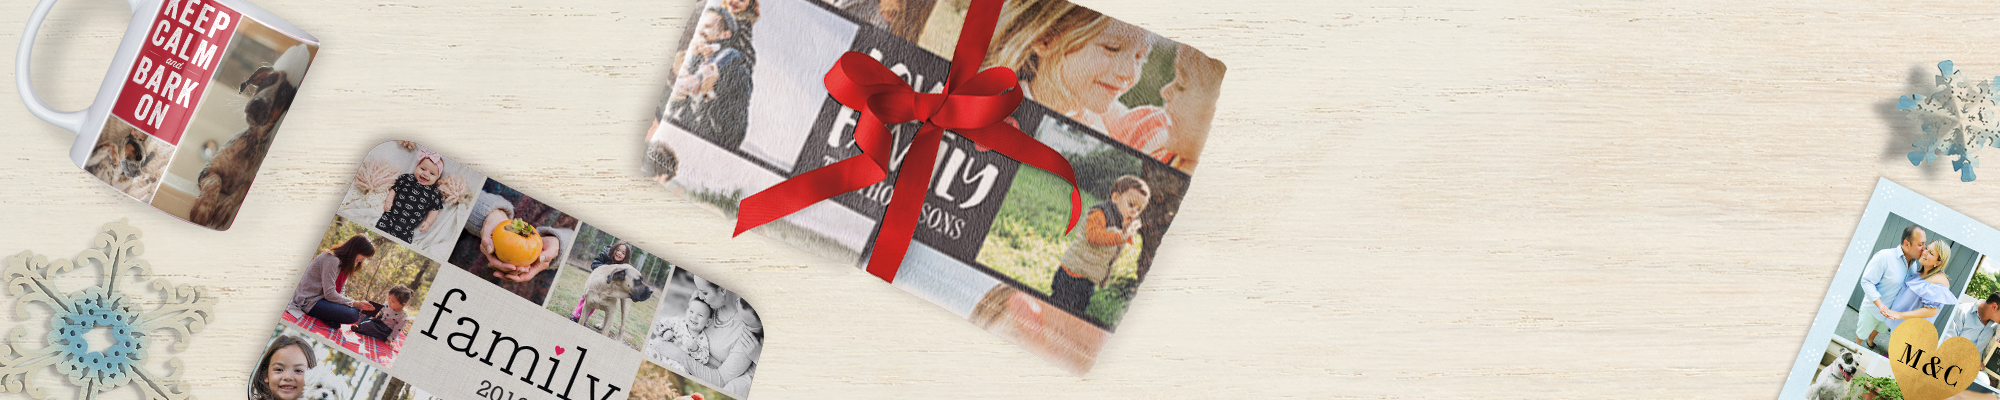 Collage Photo Gifts : Make every photo count and create amazing collage prints, blankets, mousepads, and more!